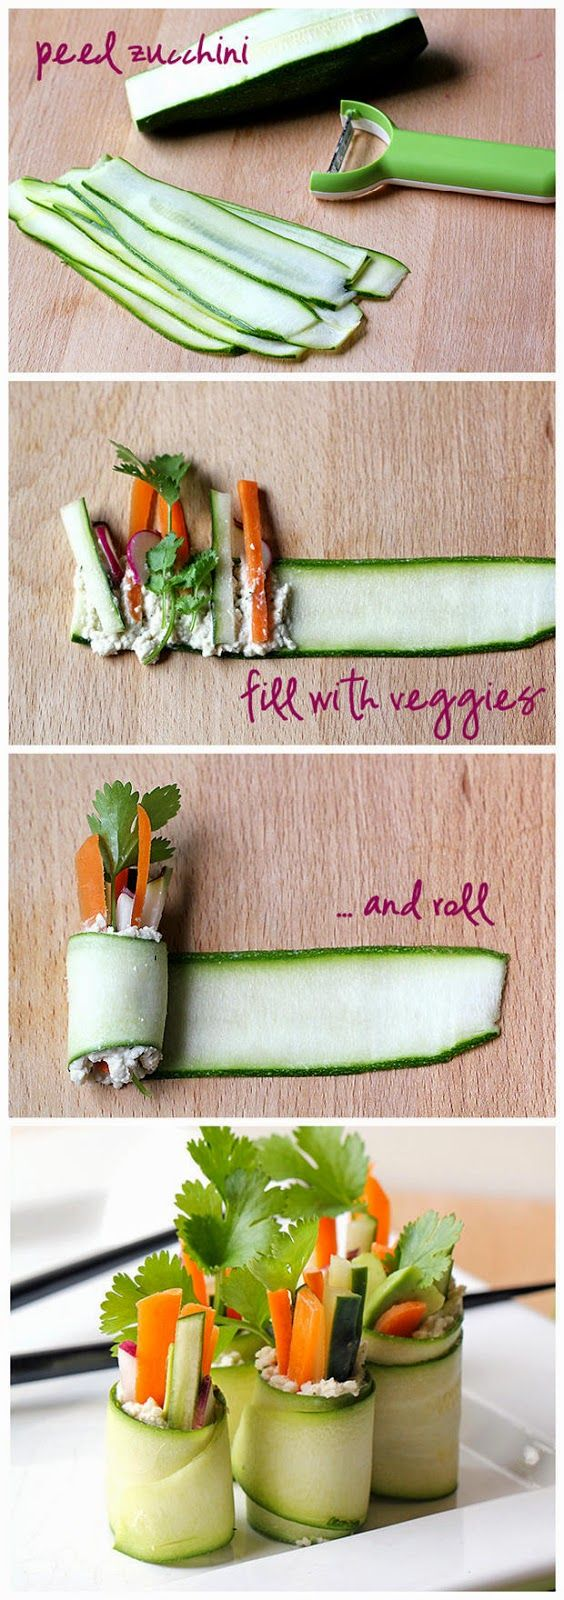 "Raw Zucchini ""Sushi"" Rolls - Need to find an alternative to the cashews but these look really good"